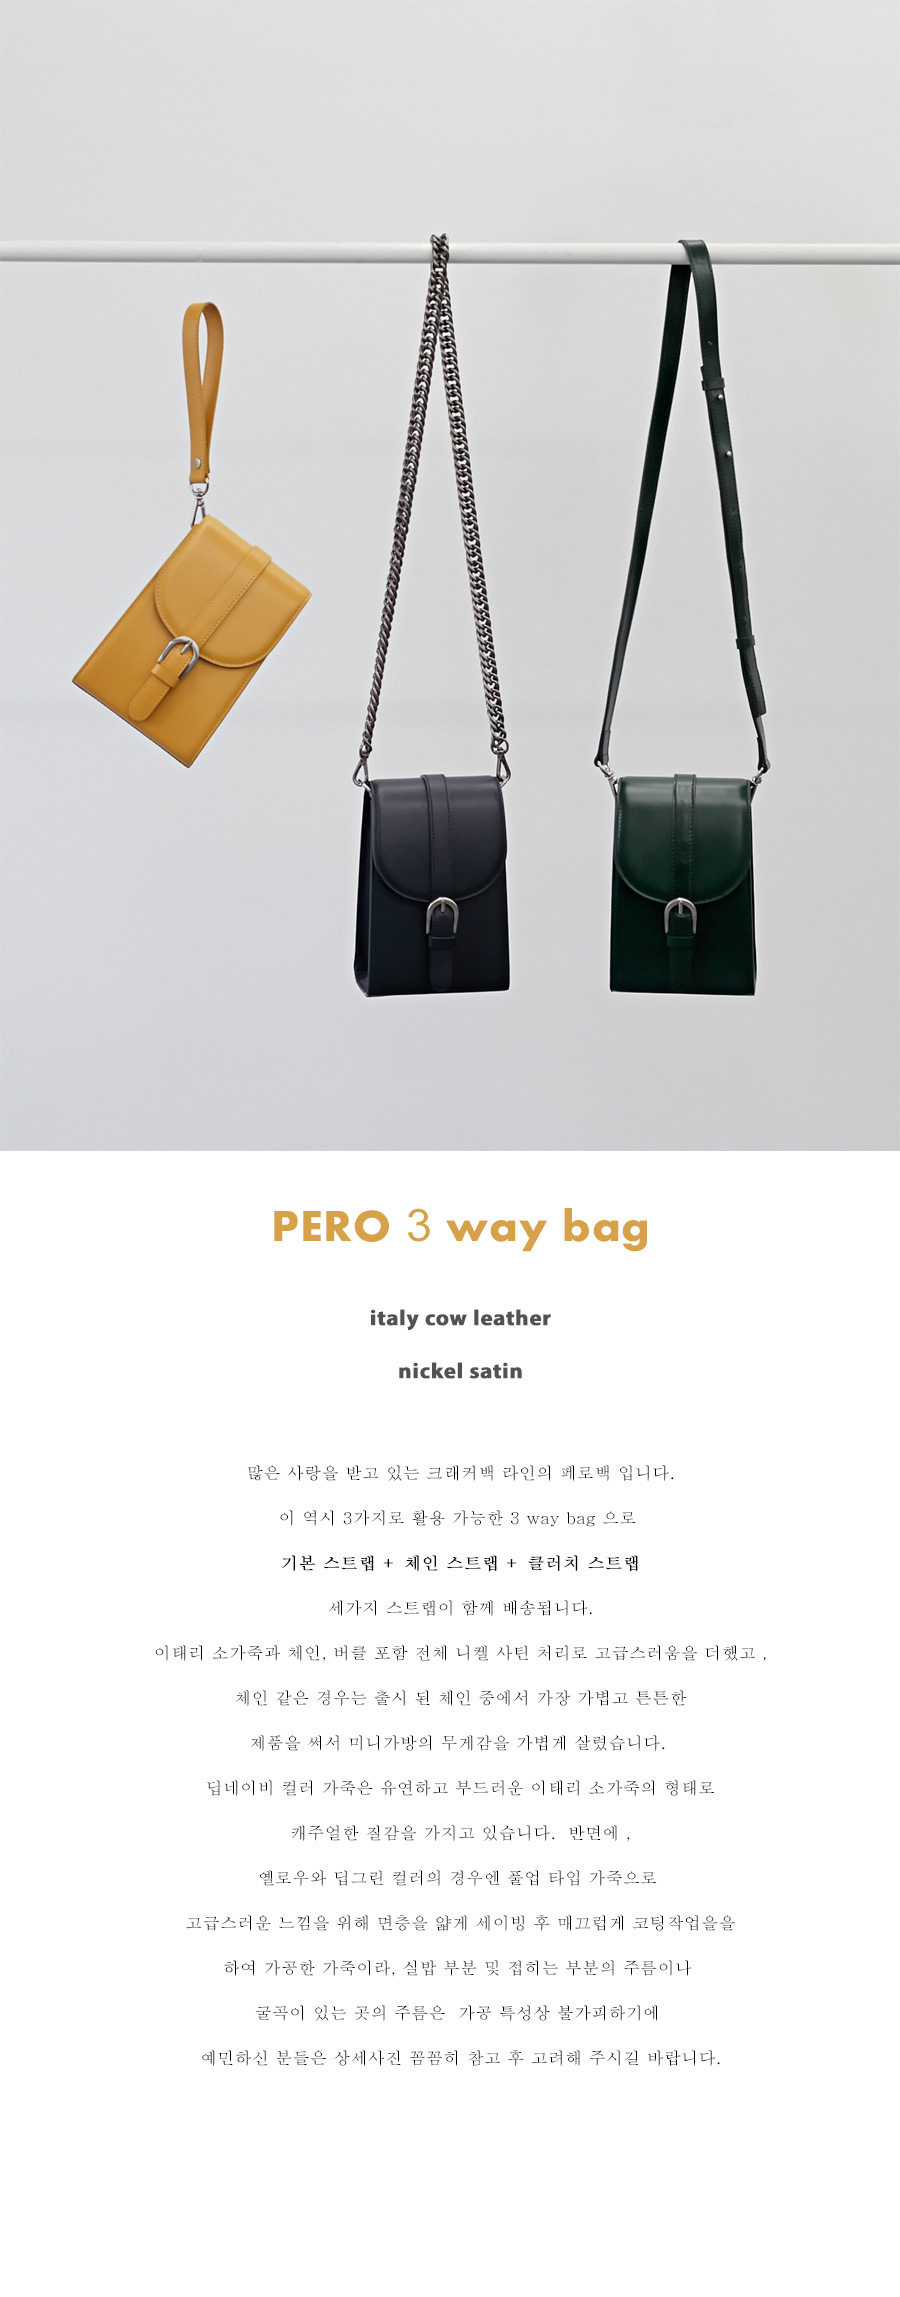 pero 3 way bag ( + cherry blossom )